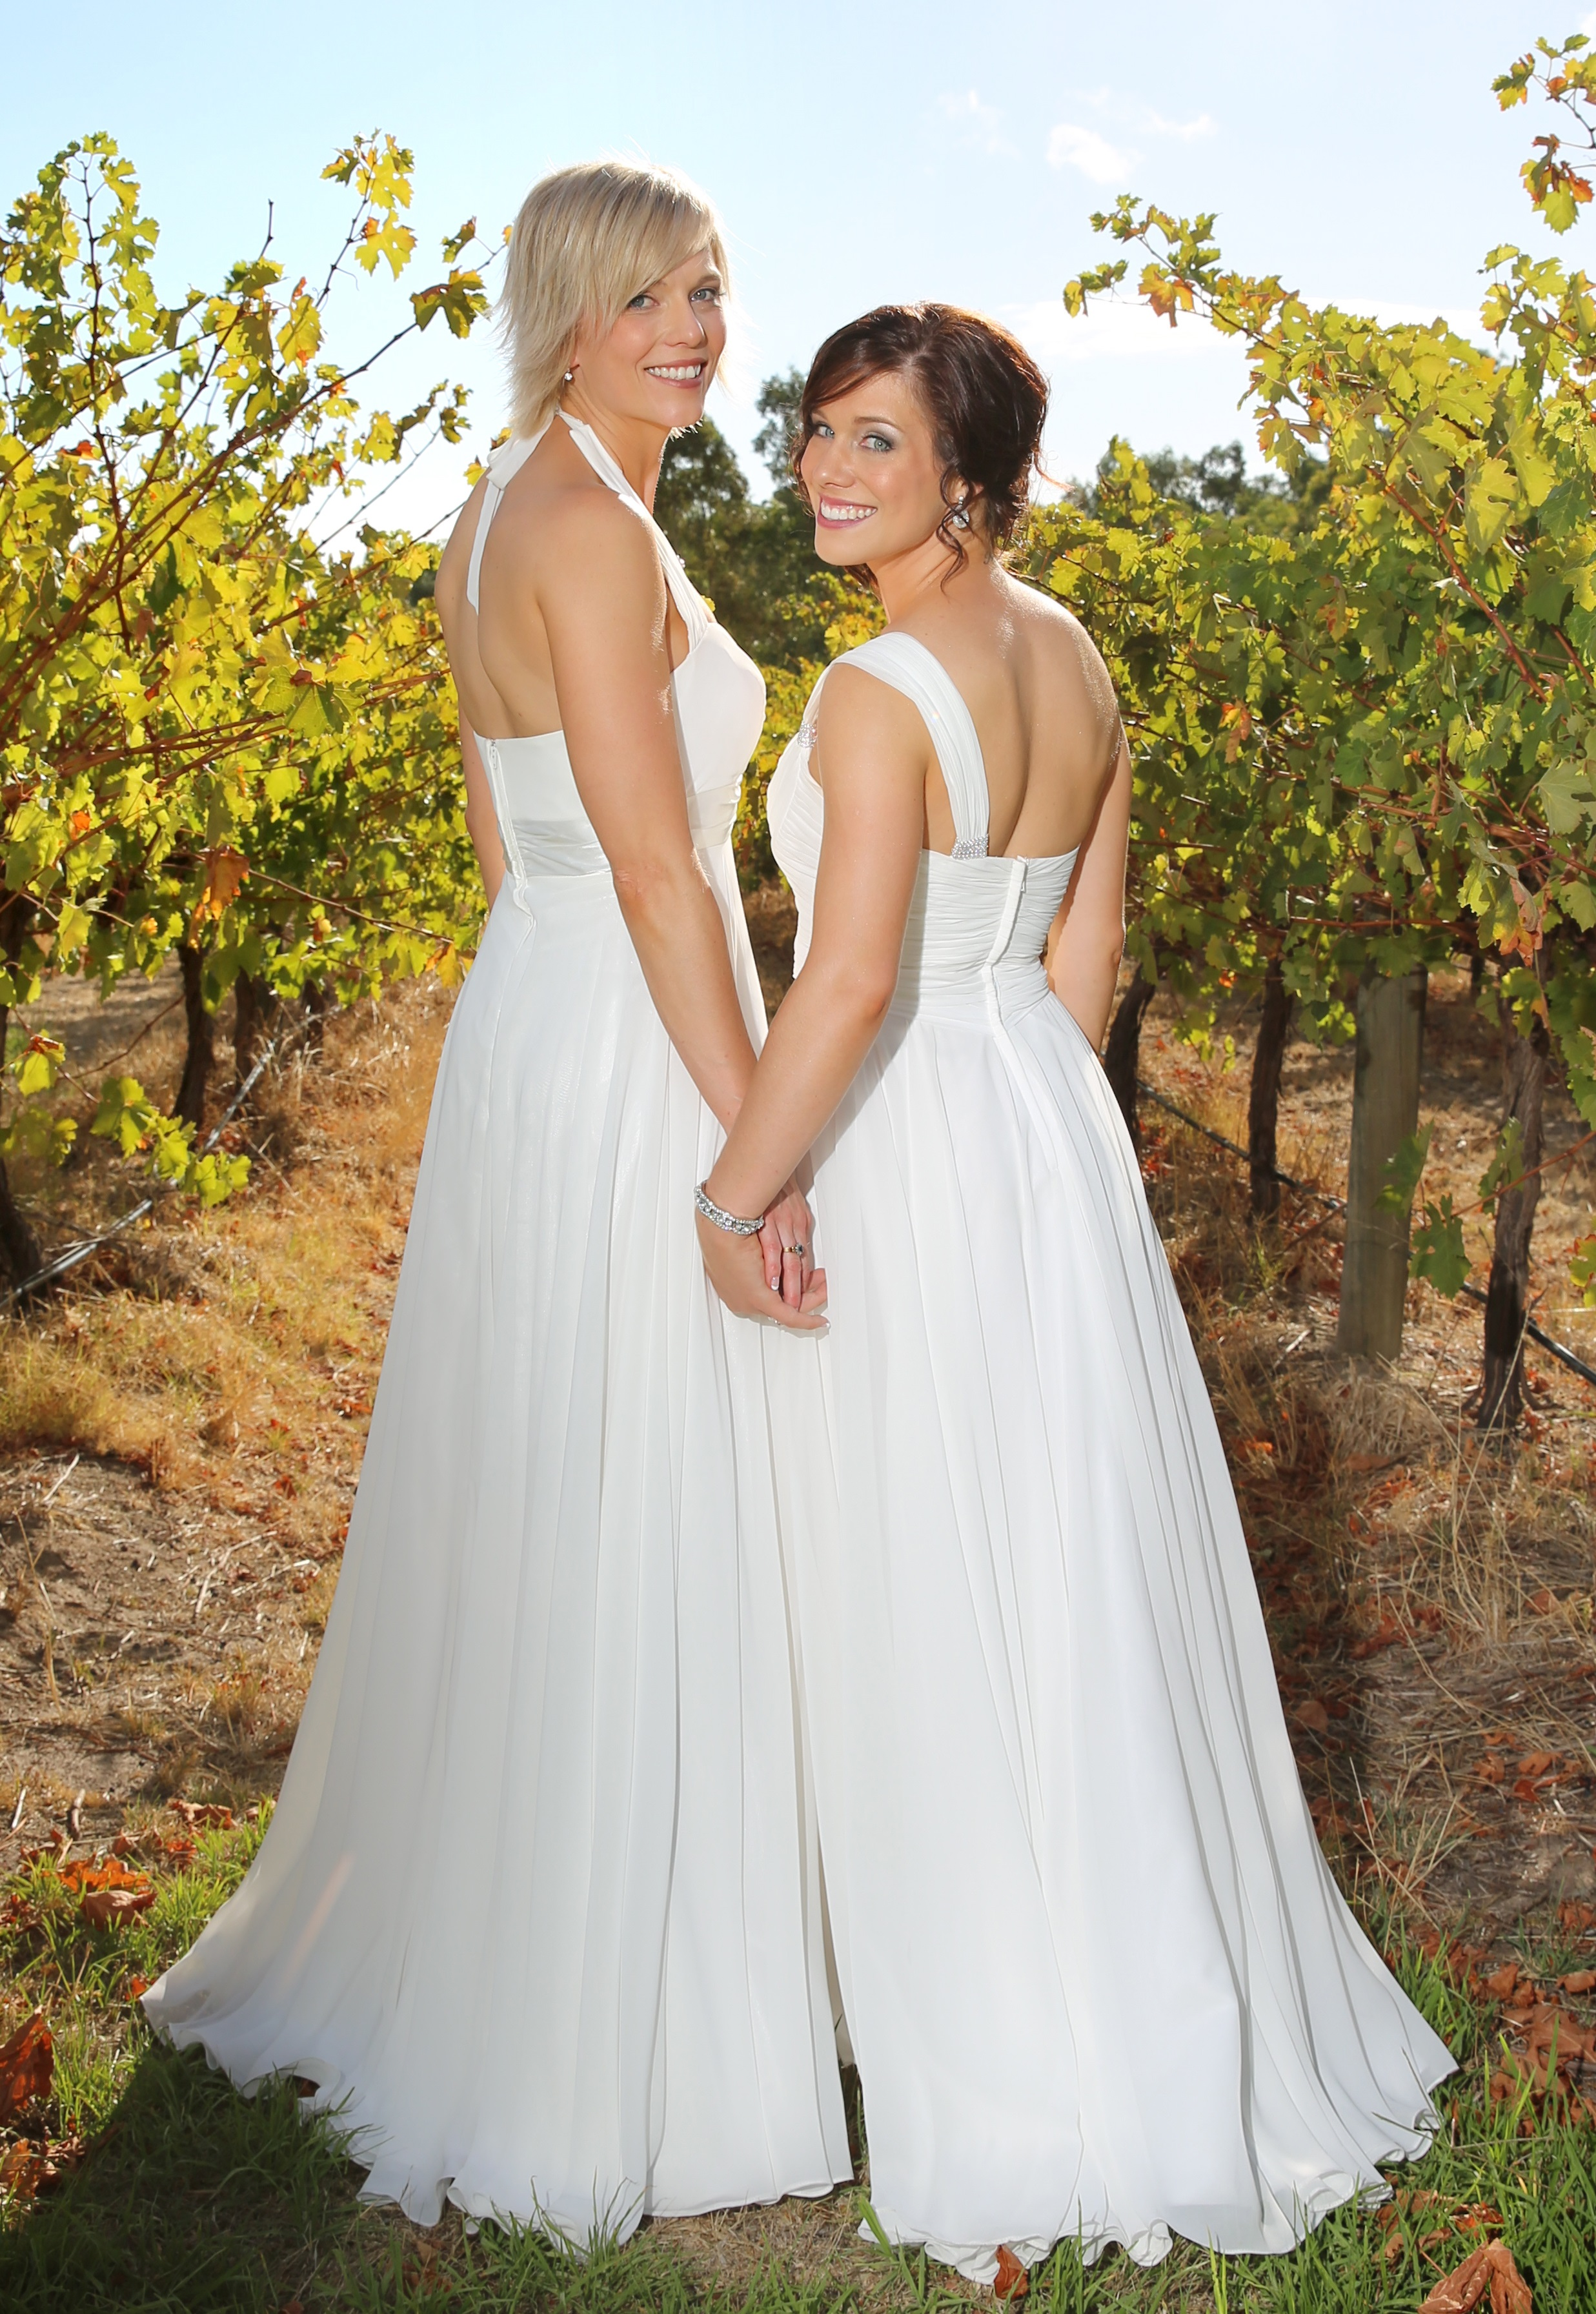 Wedding Gowns For Mature Brides 004 - Wedding Gowns For Mature Brides